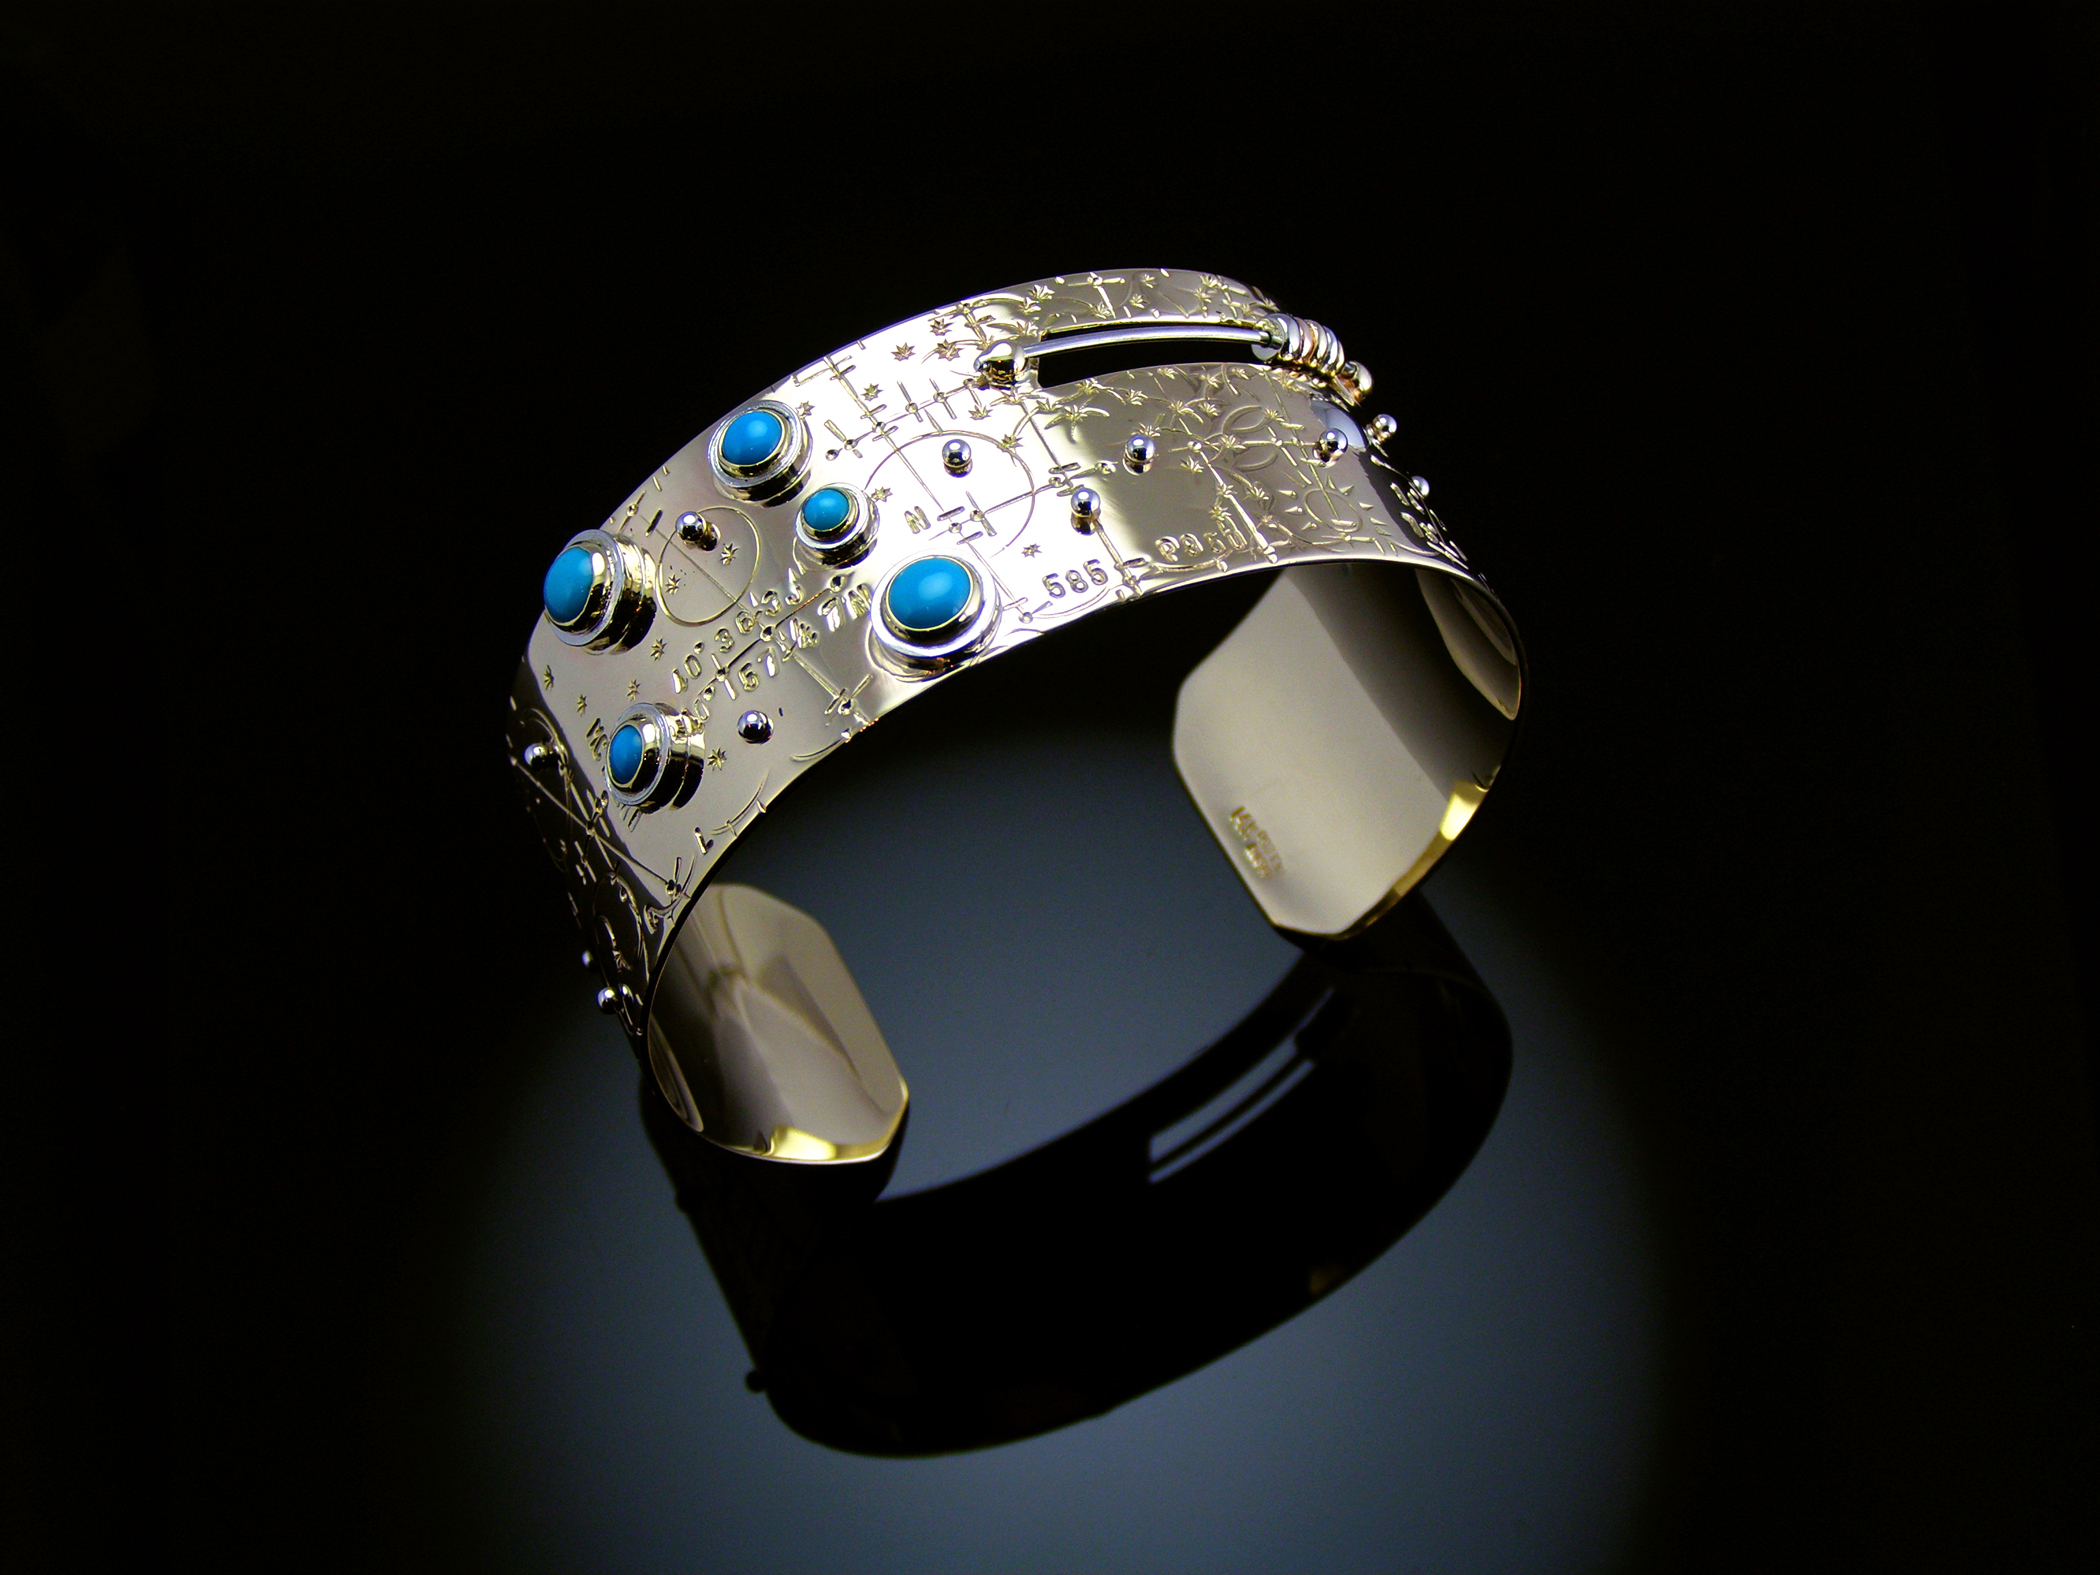 Time Traveler Constellation Cuff